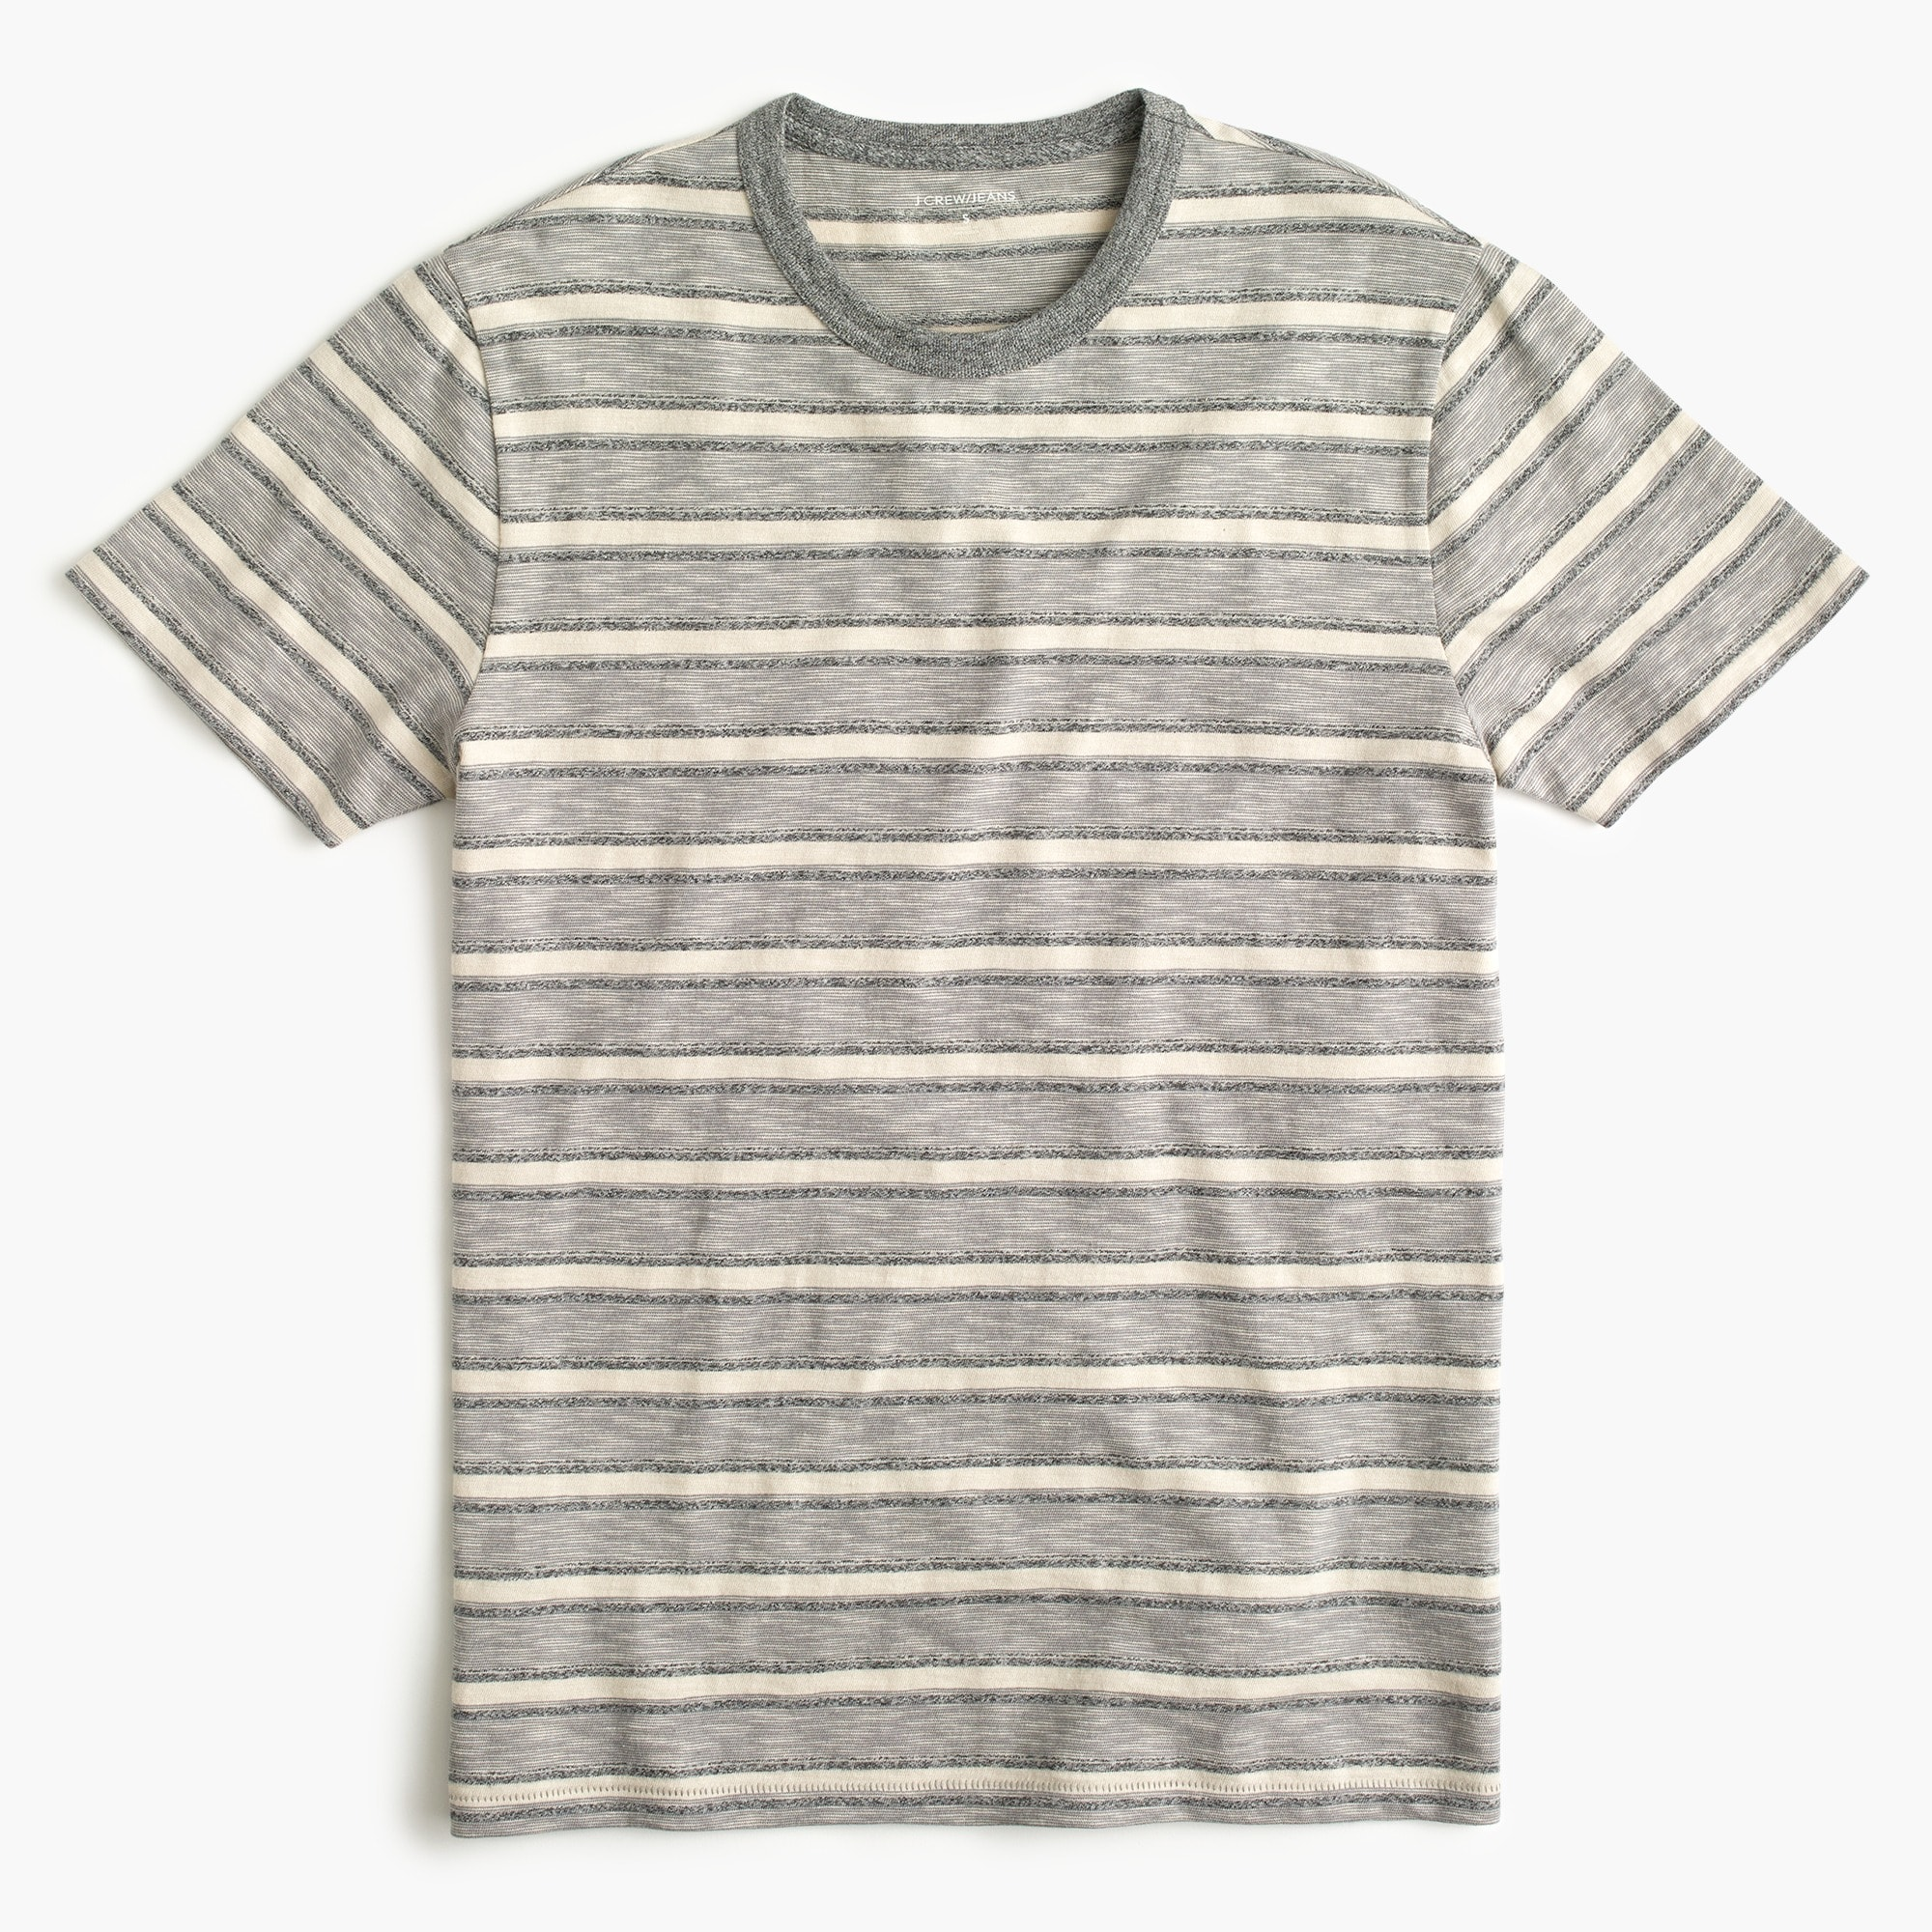 Classic J.Crew Jeans slub jersey pocket T-shirt in heathered stripe